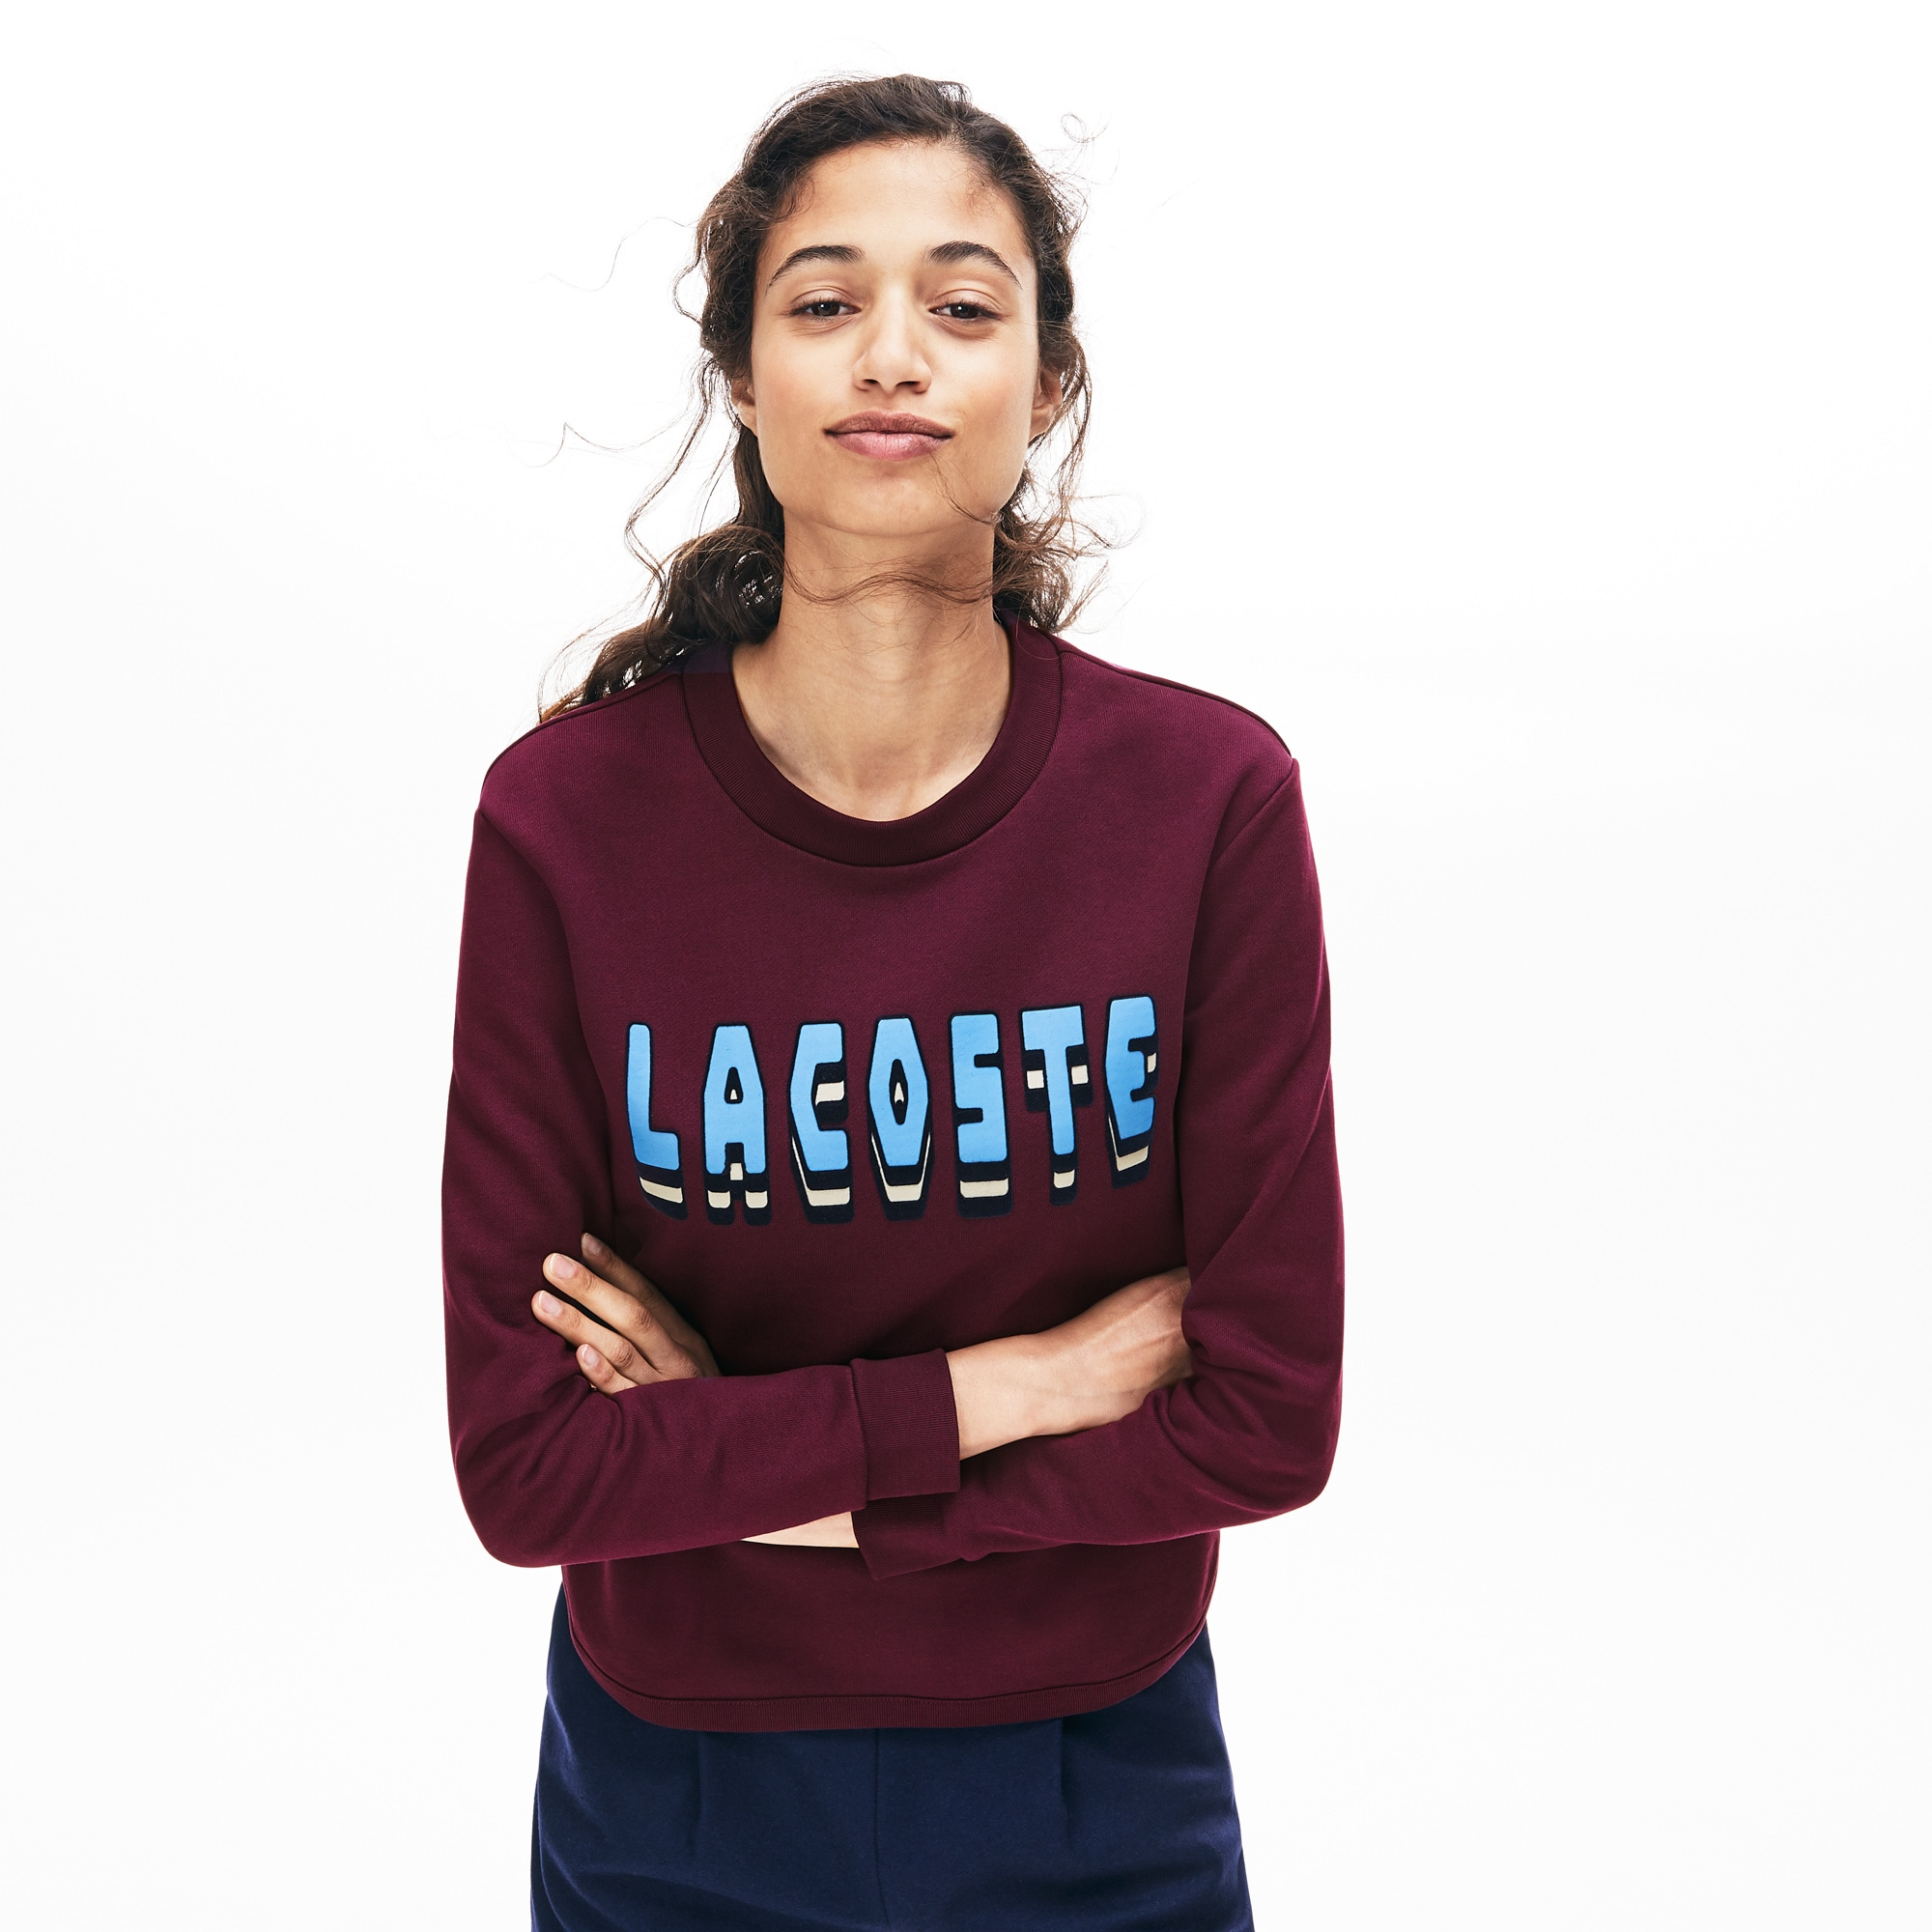 Women's Crew Neck Lettering Cotton Blend Fleece Sweatshirt